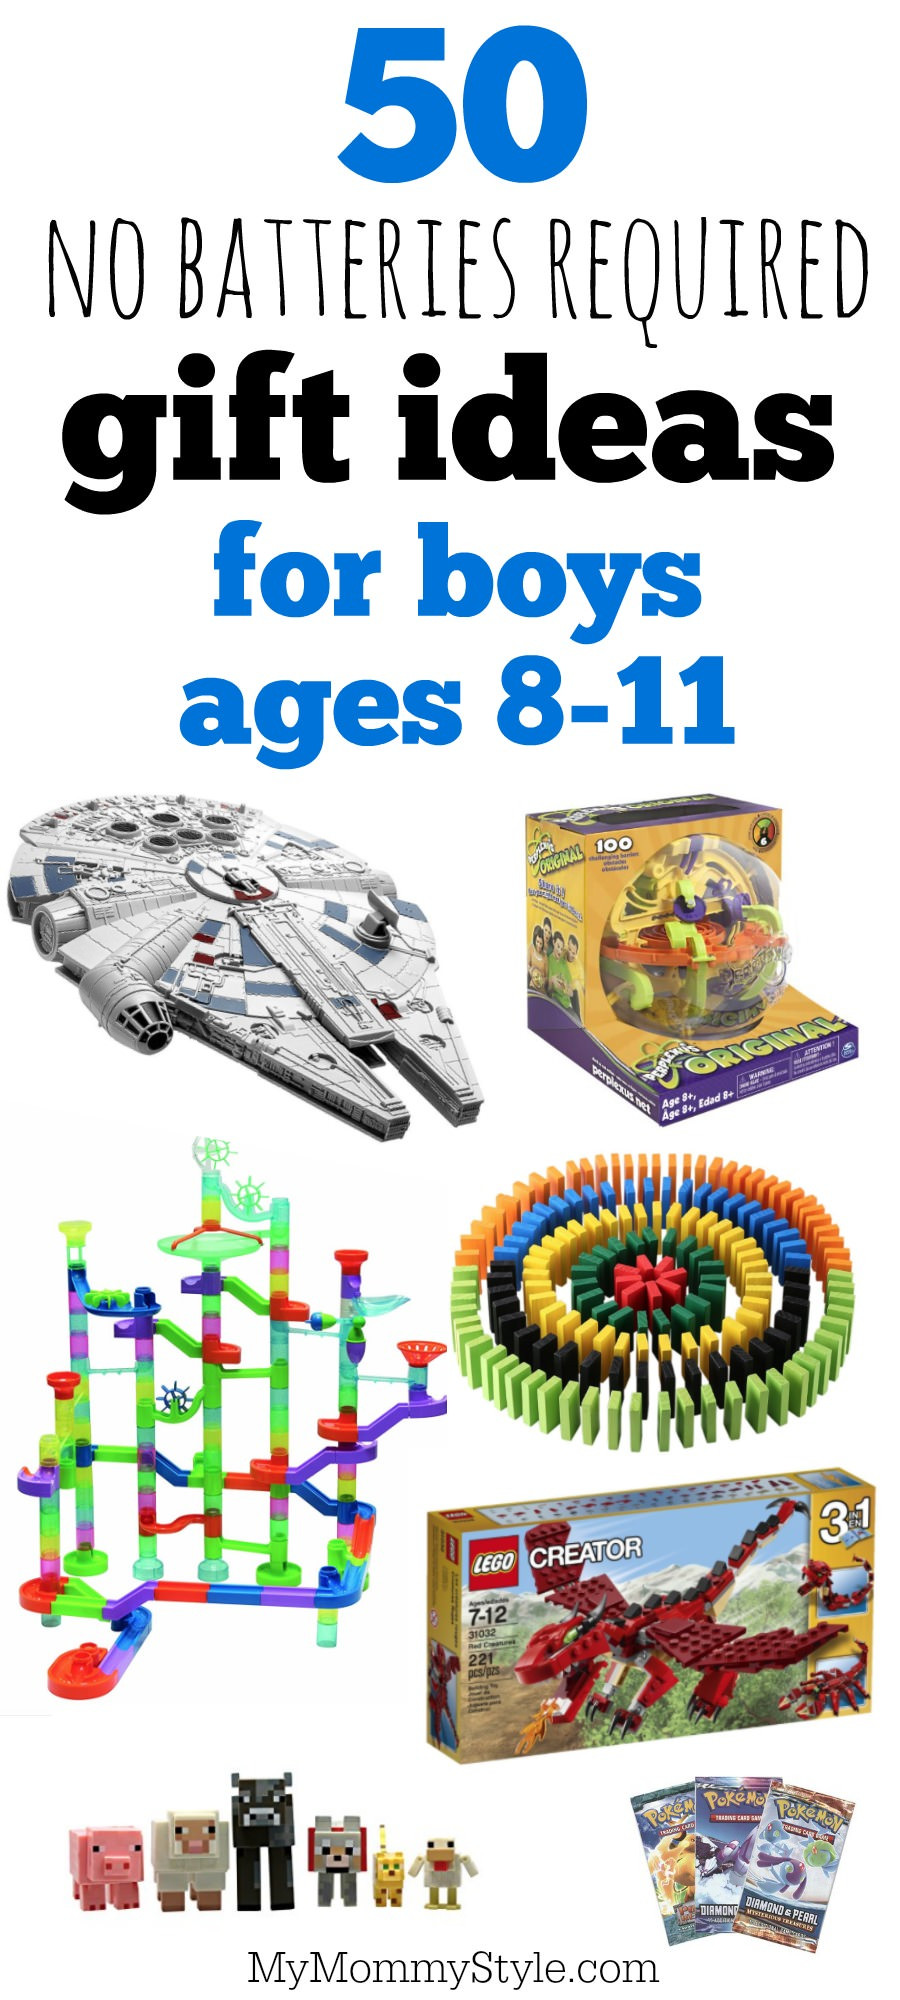 Boys Gift Ideas Age 8  50 battery free t ideas for boys ages 8 11 My Mommy Style